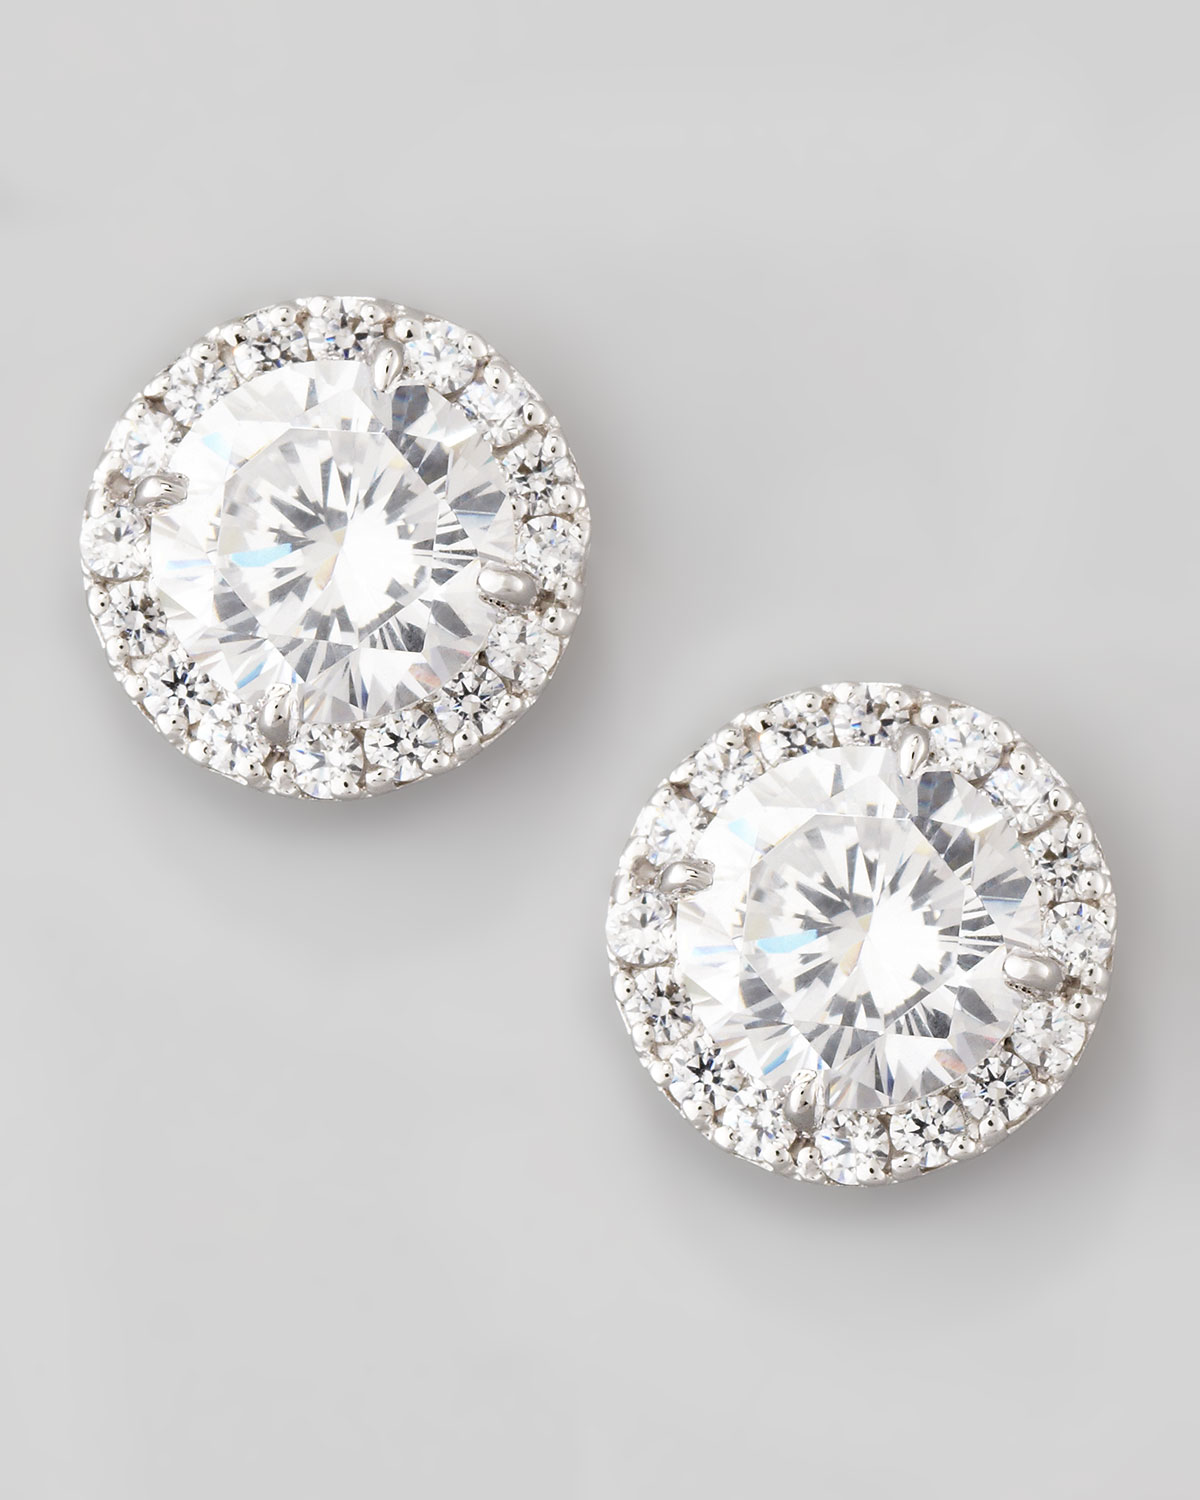 Fantasia 22k Gold-Plated CZ Stud Earrings, Clear